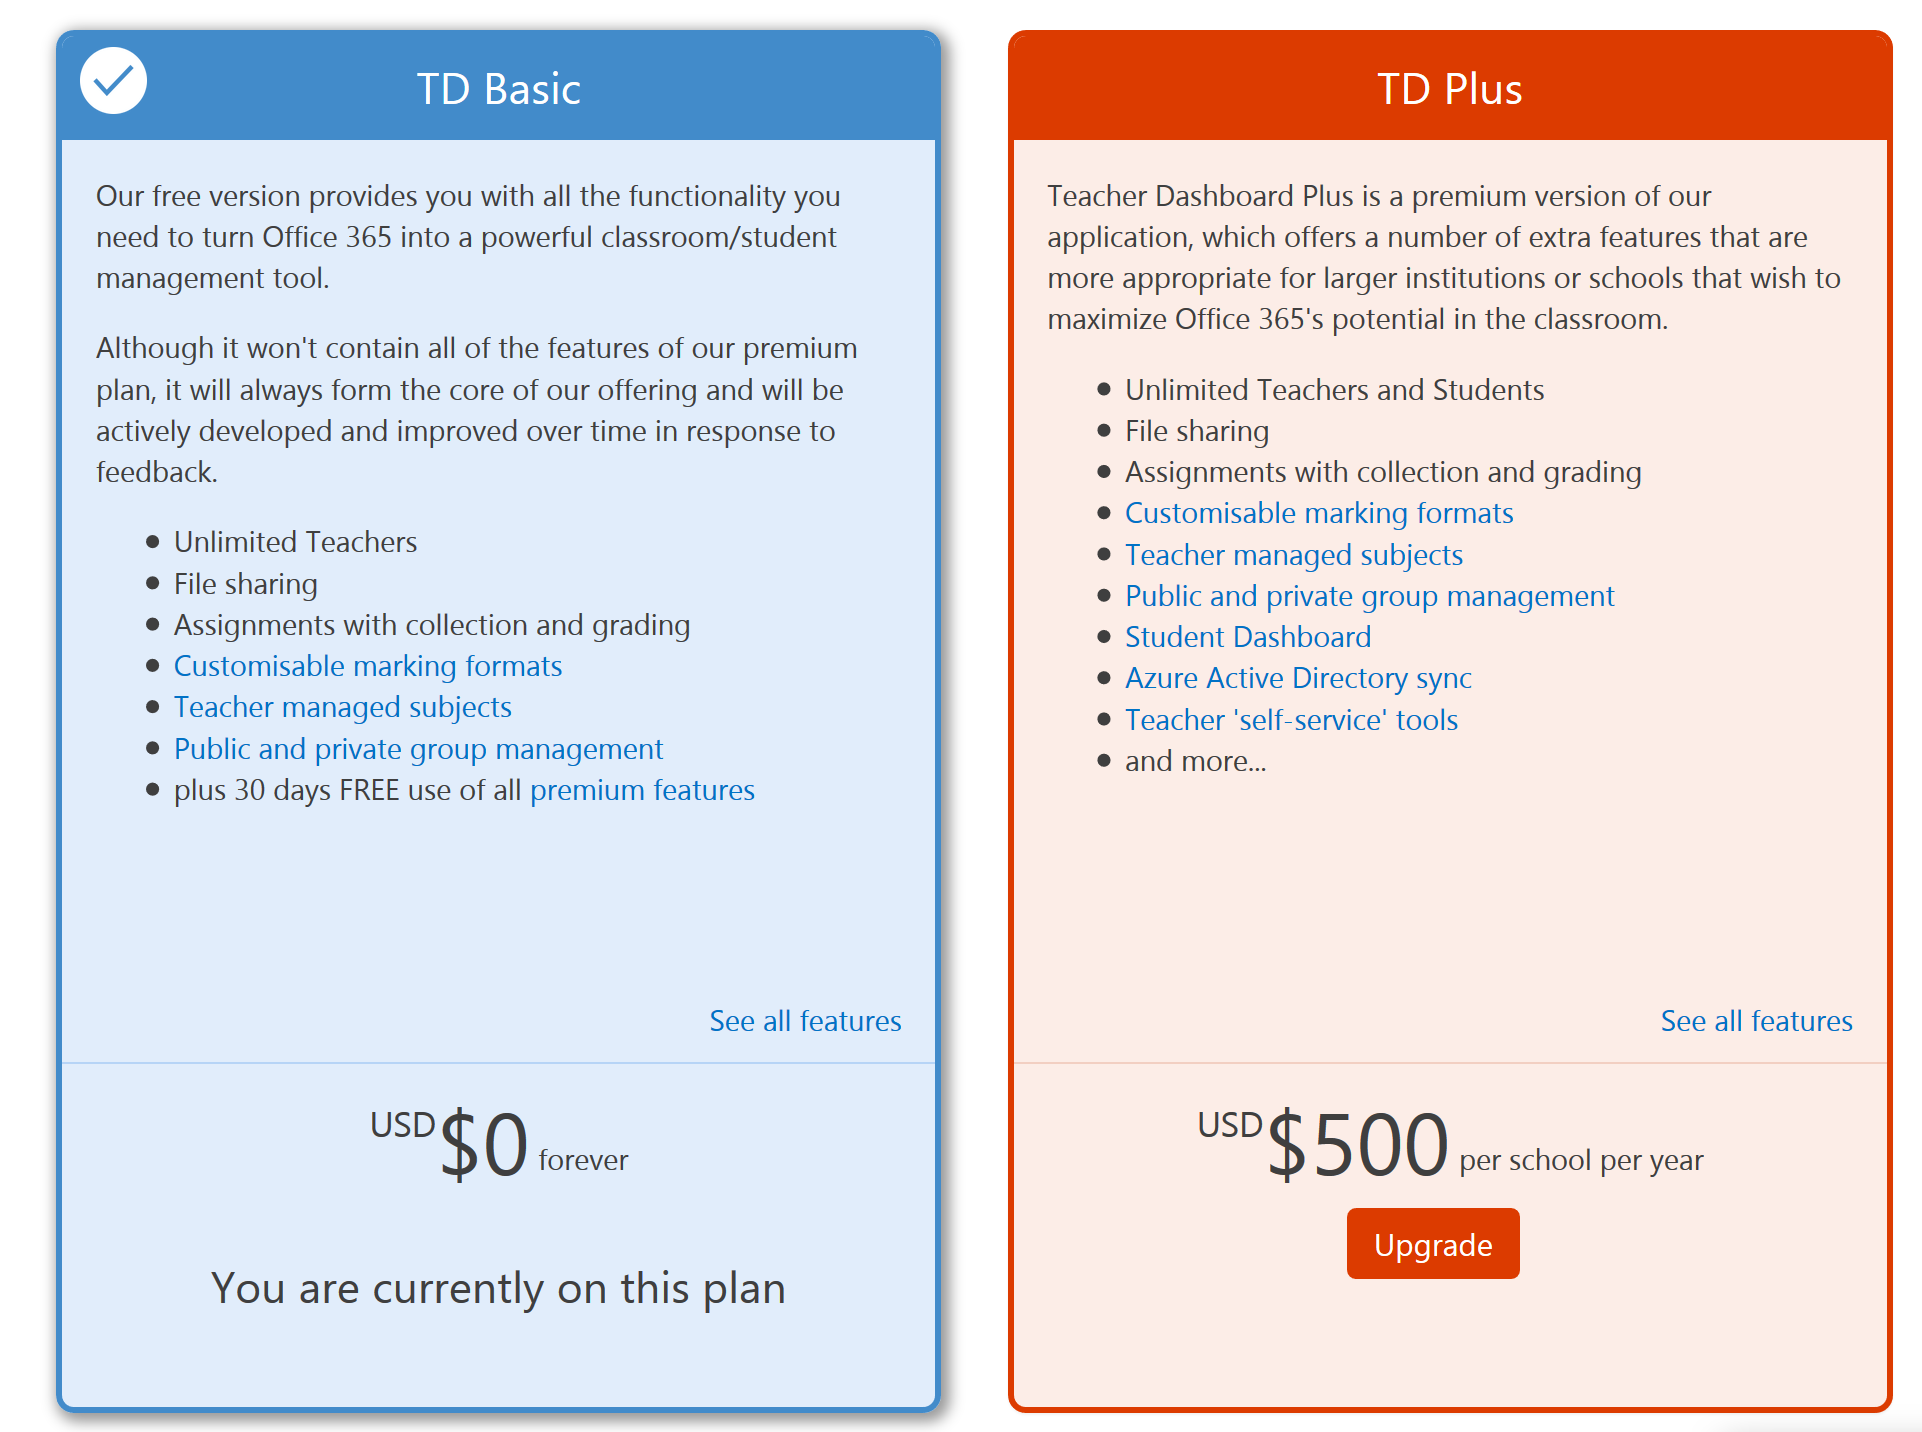 Screenshot of TD Pricing page showing two options